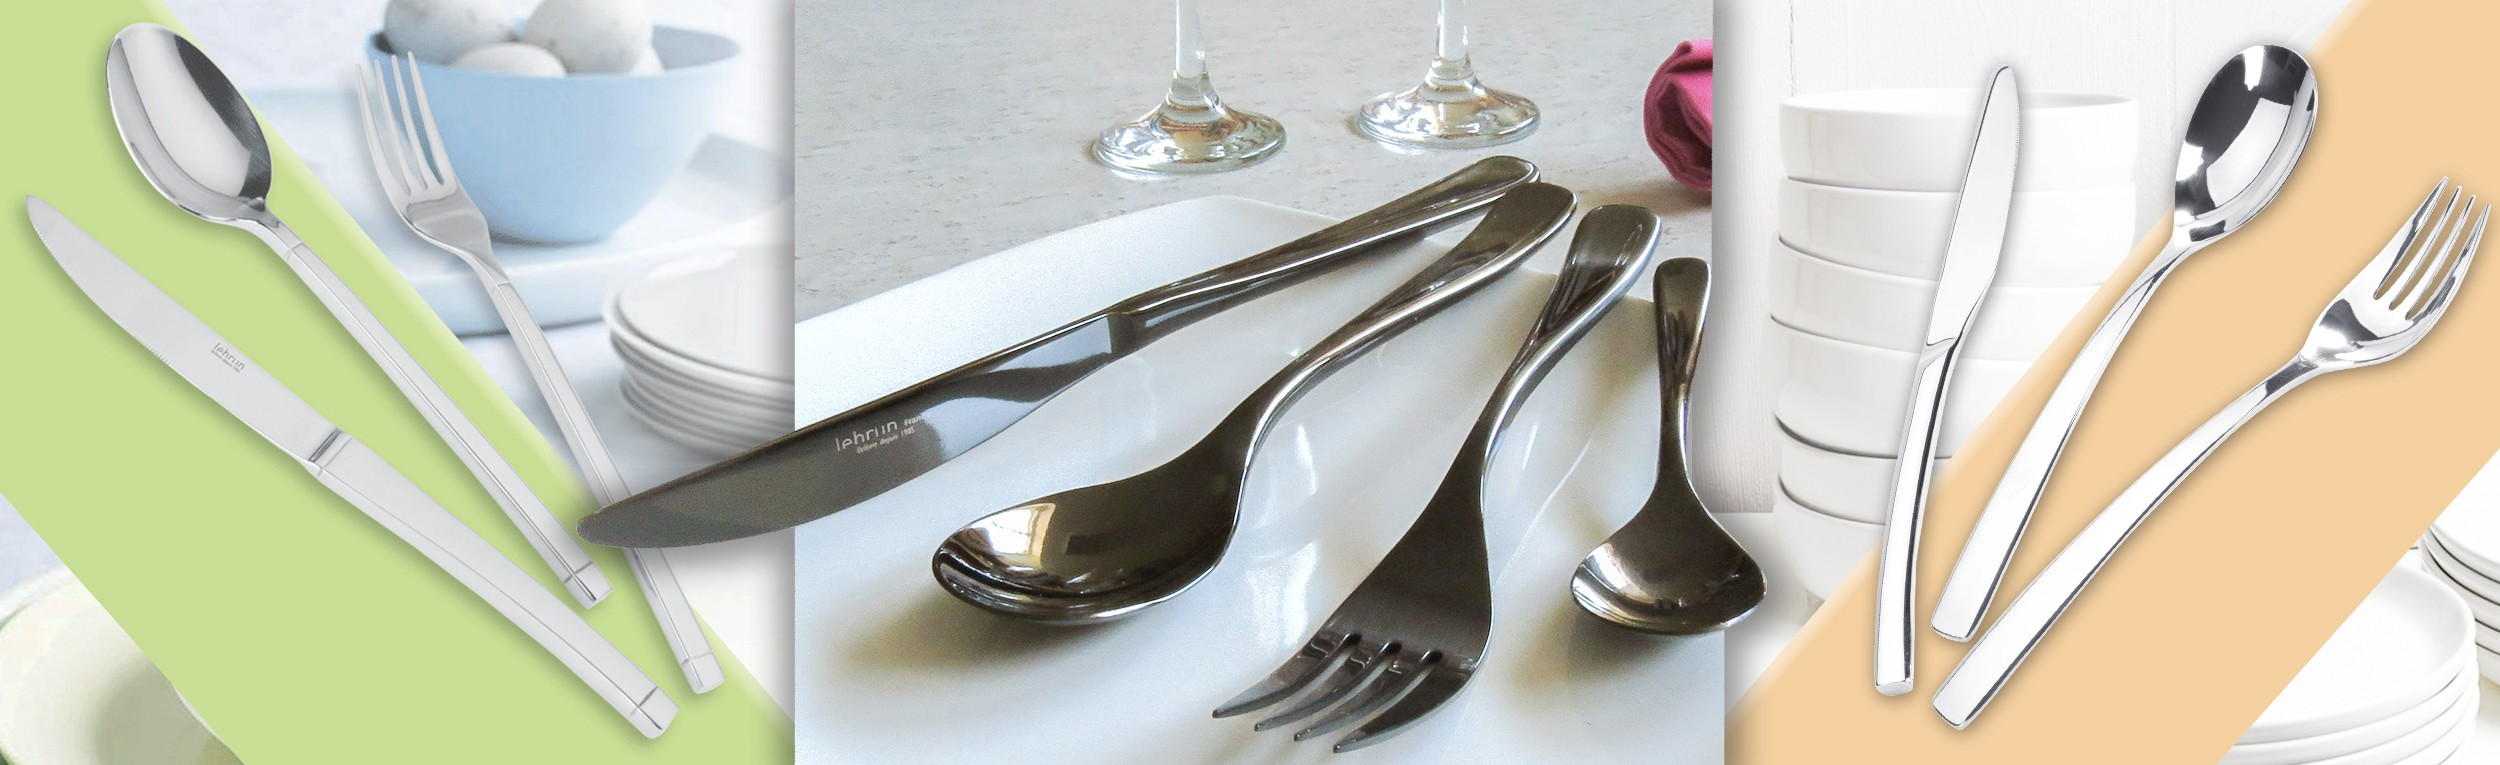 Specialist in tableware